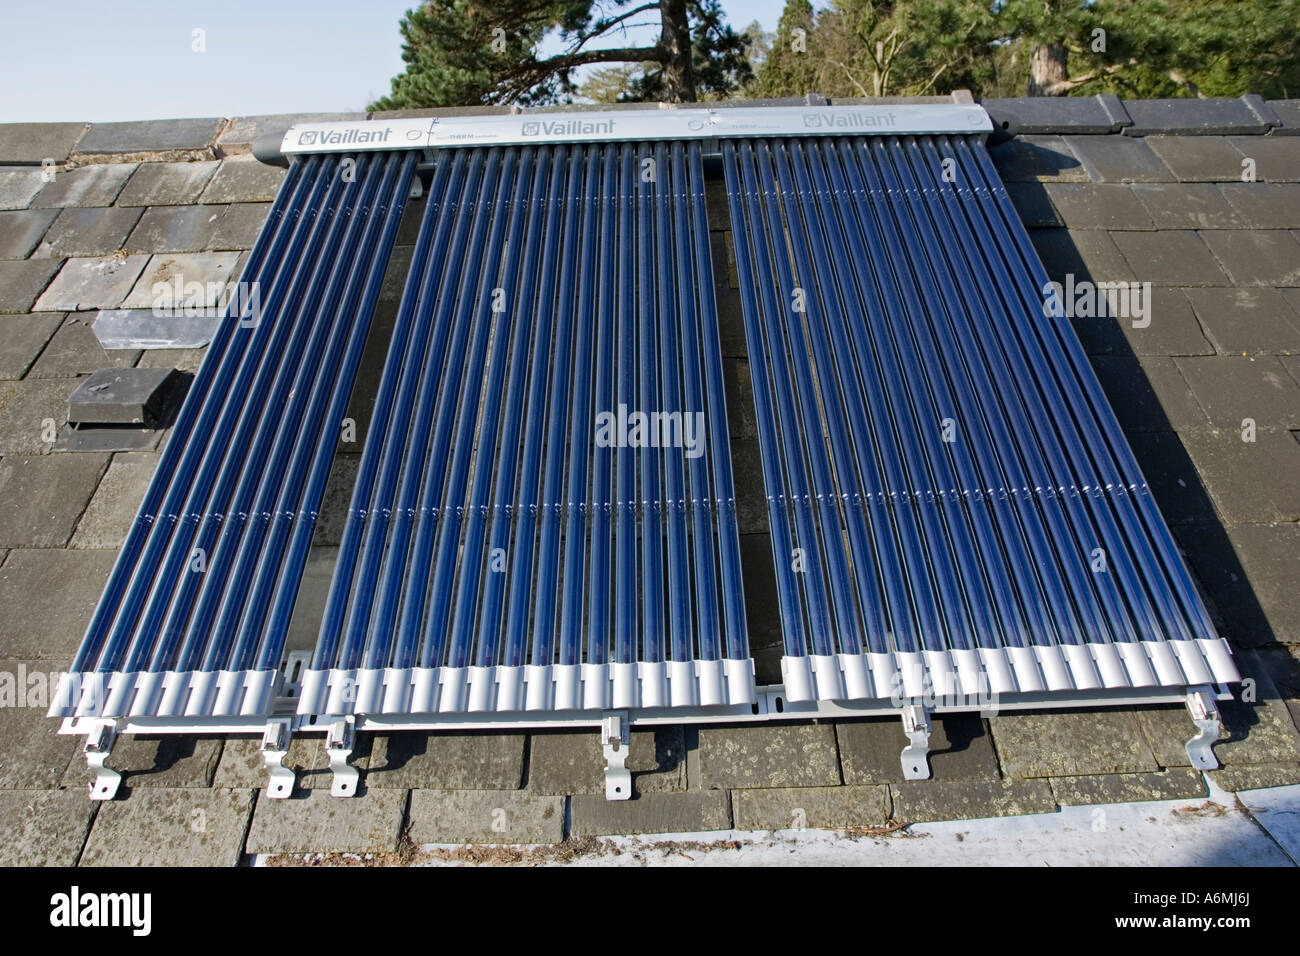 Bank of roof mounted Vaillant aurotherm evacuated tube solar collectors installed on slate roof Cotswolds UK - Stock Image